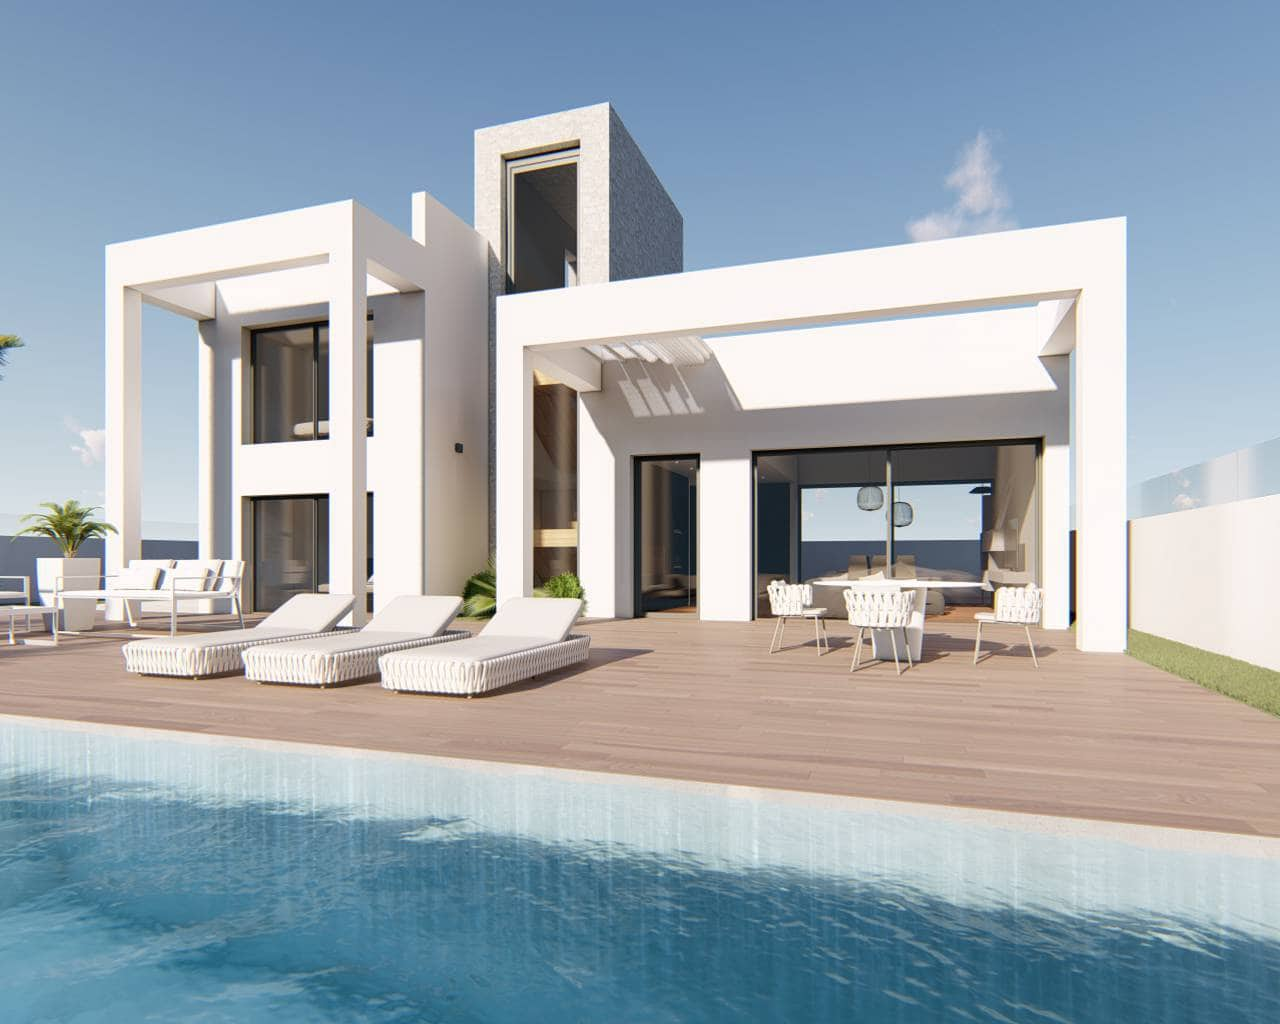 3 bedroom Villa for sale in Finestrat with pool - € 399,900 (Ref: 5716668)